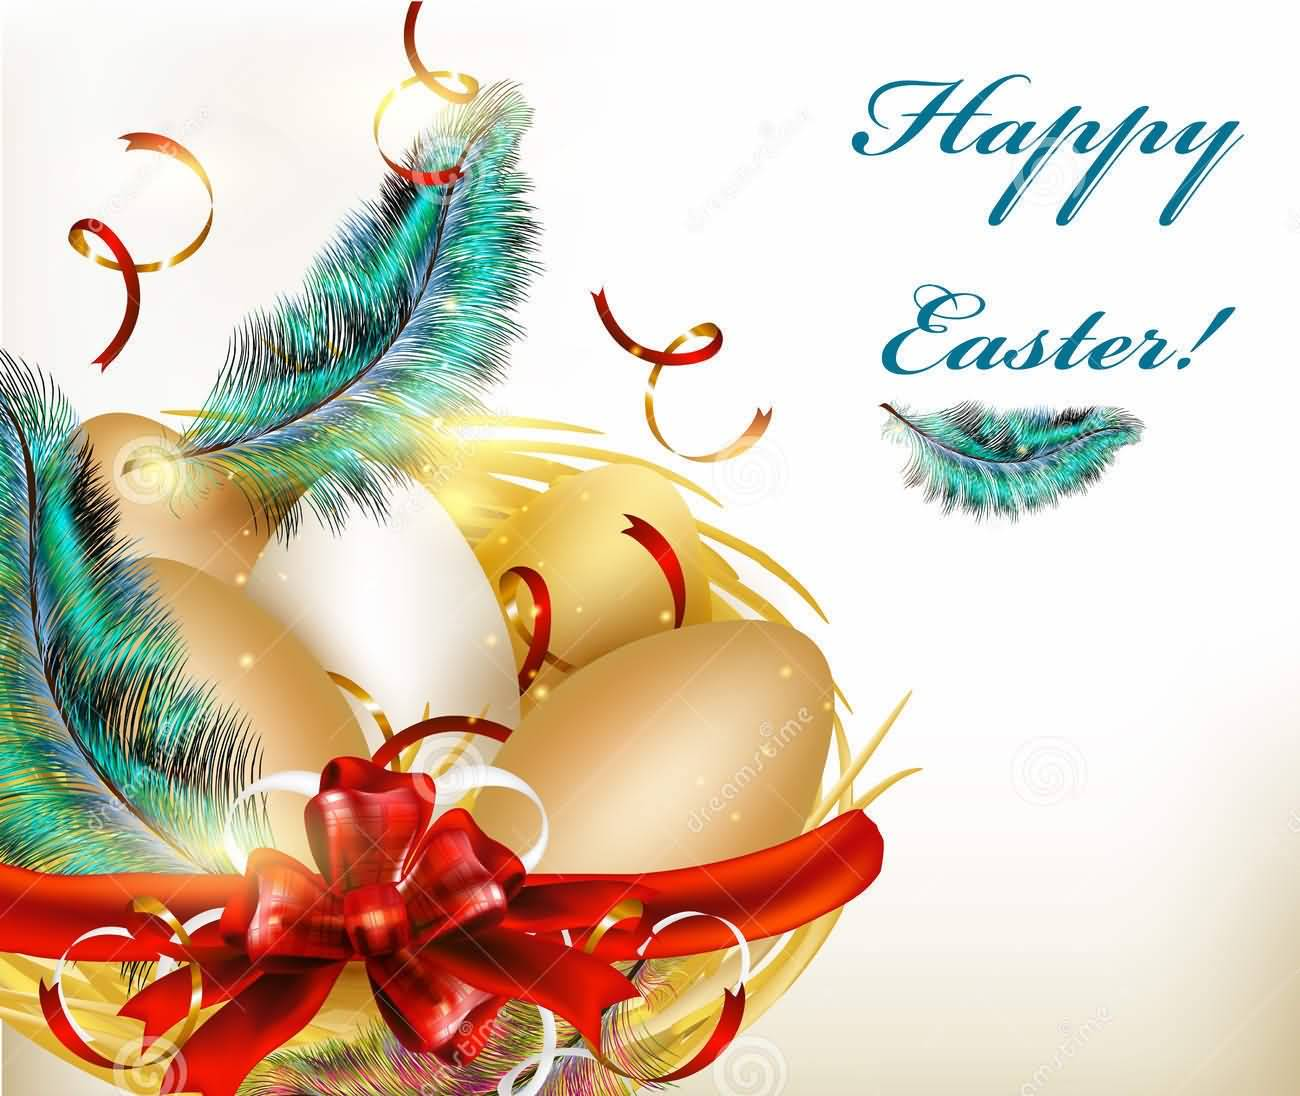 Happy Easter Golden Eggs And Peacock Feathers Gift Wrap